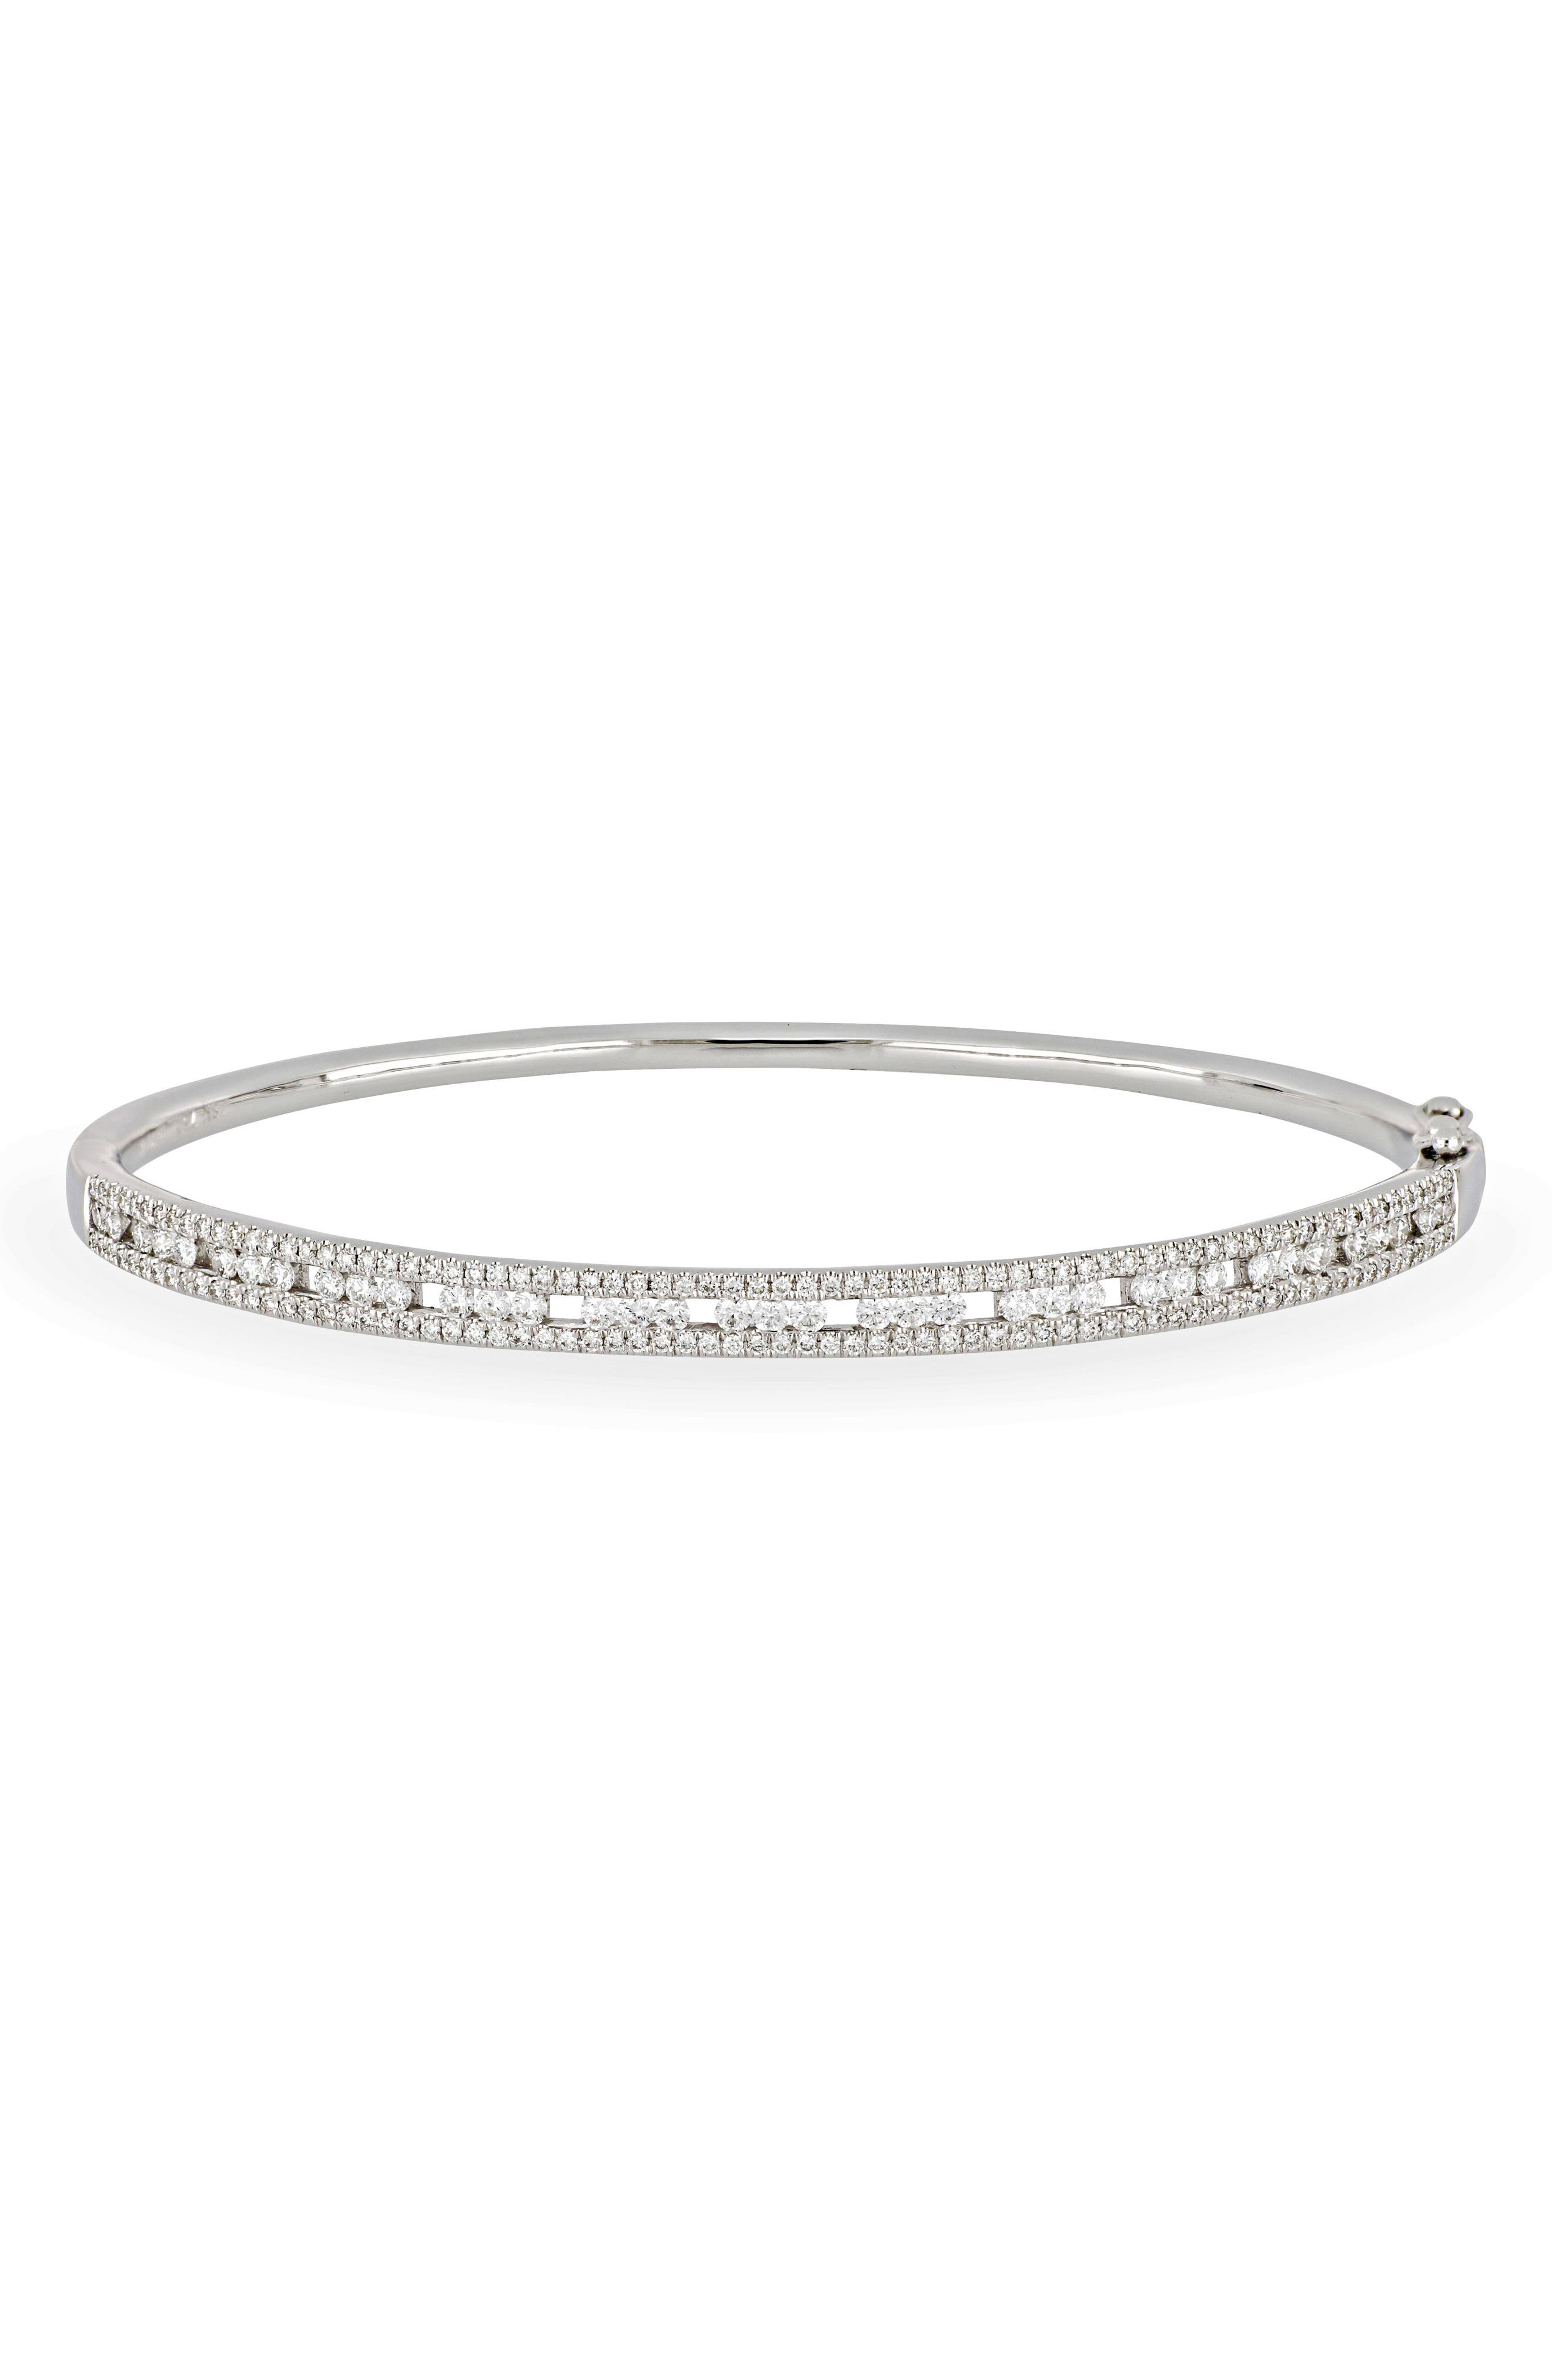 Amara Deluxe Hinge Bangle,                             Main thumbnail 1, color,                             WHITE GOLD